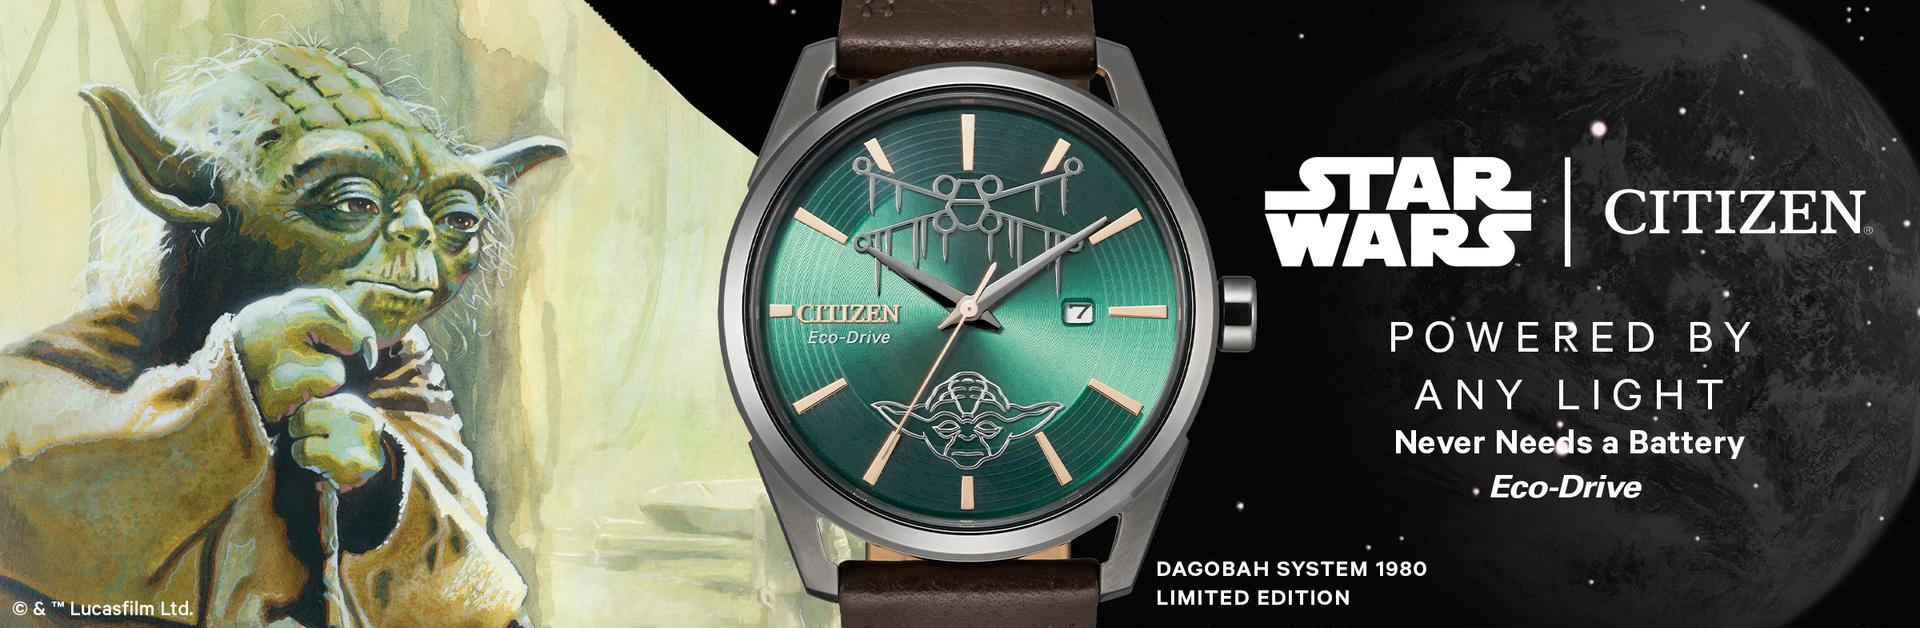 citizen star wars watches, yoda watch